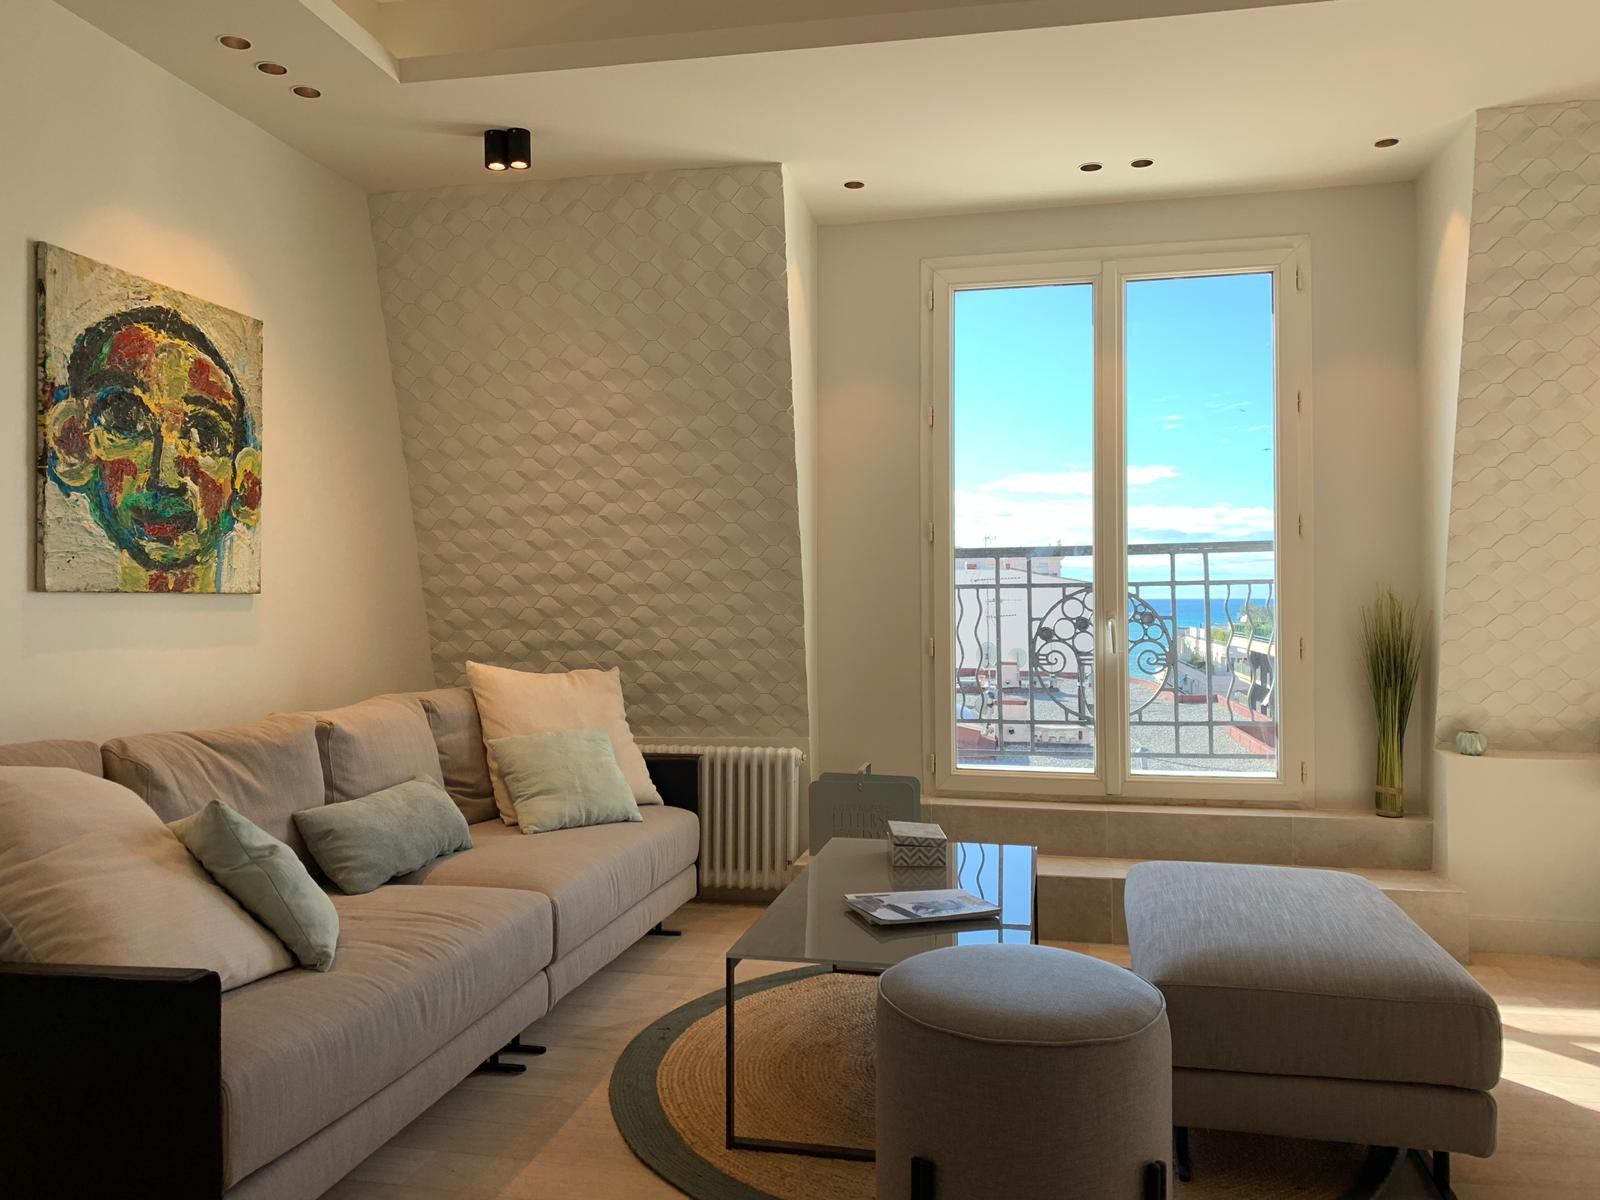 Cannes Banane - Central Location 3 bedroom renovated apartment